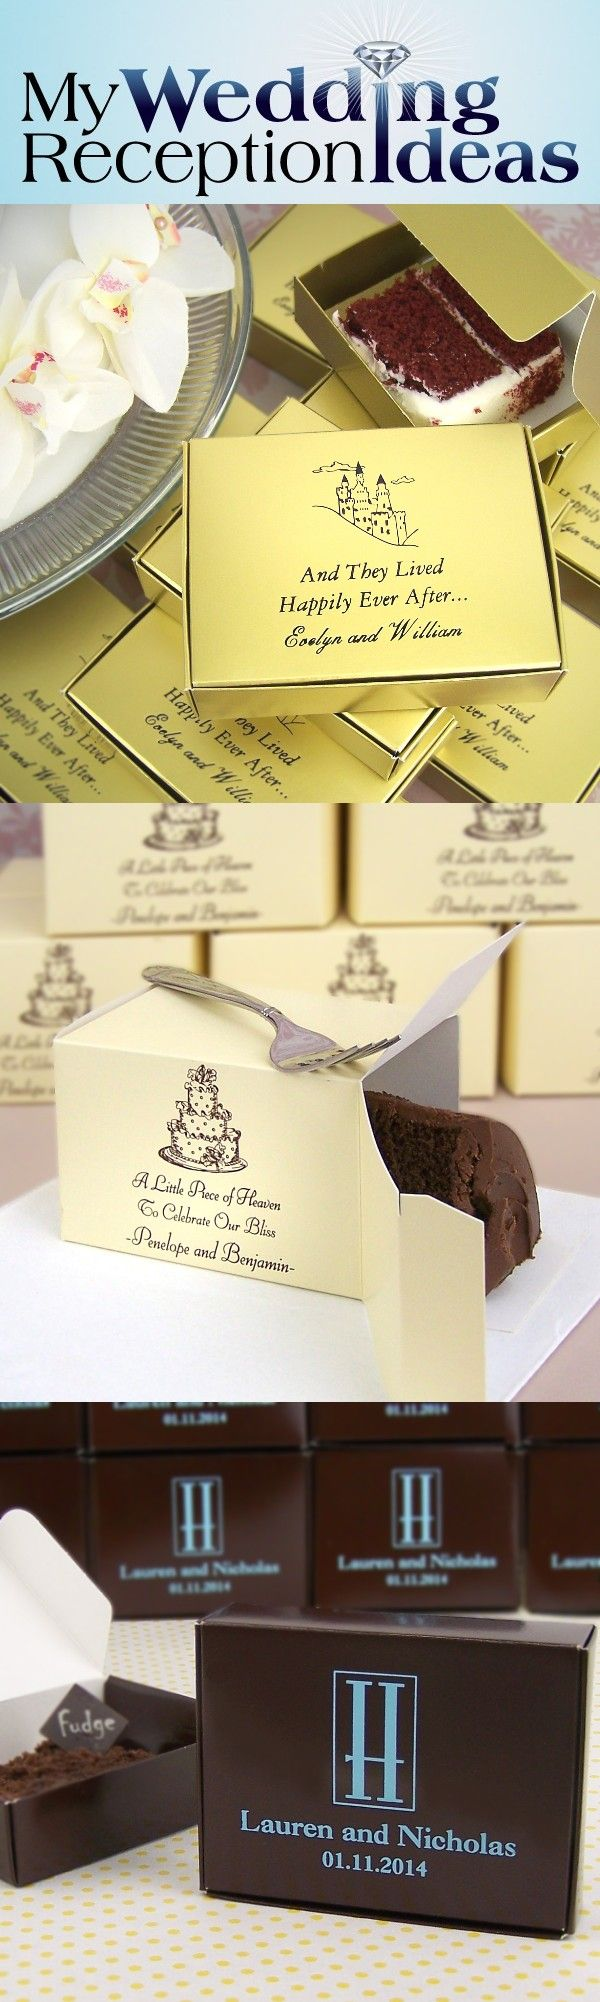 Send guests home with a slice of wedding cake neatly packaged in personalized cake slice favor boxes...